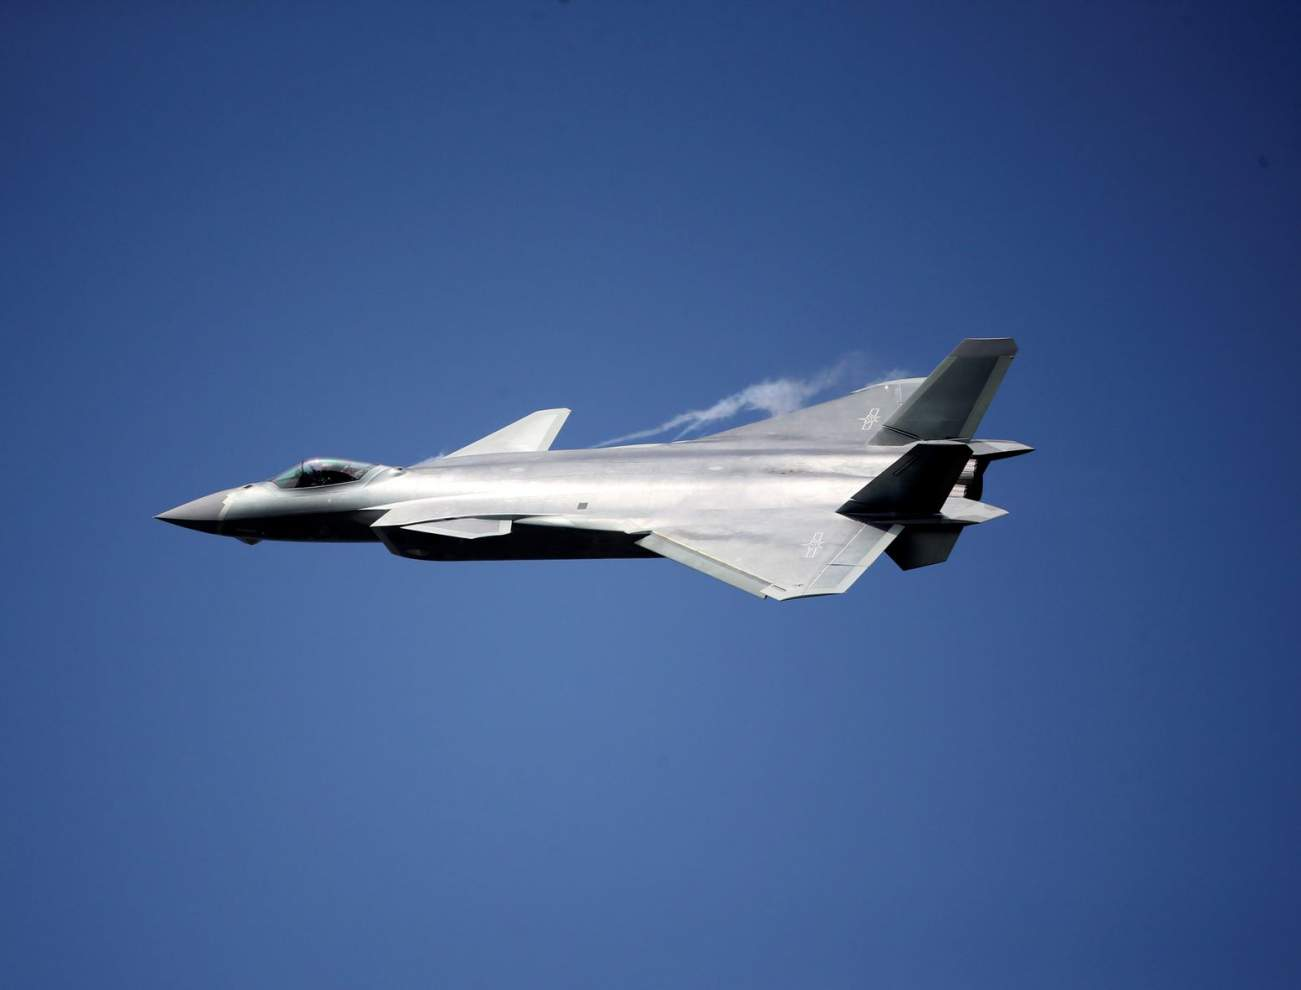 China's J-20 Stealth Fighter Has One Big Advantage over the F-35